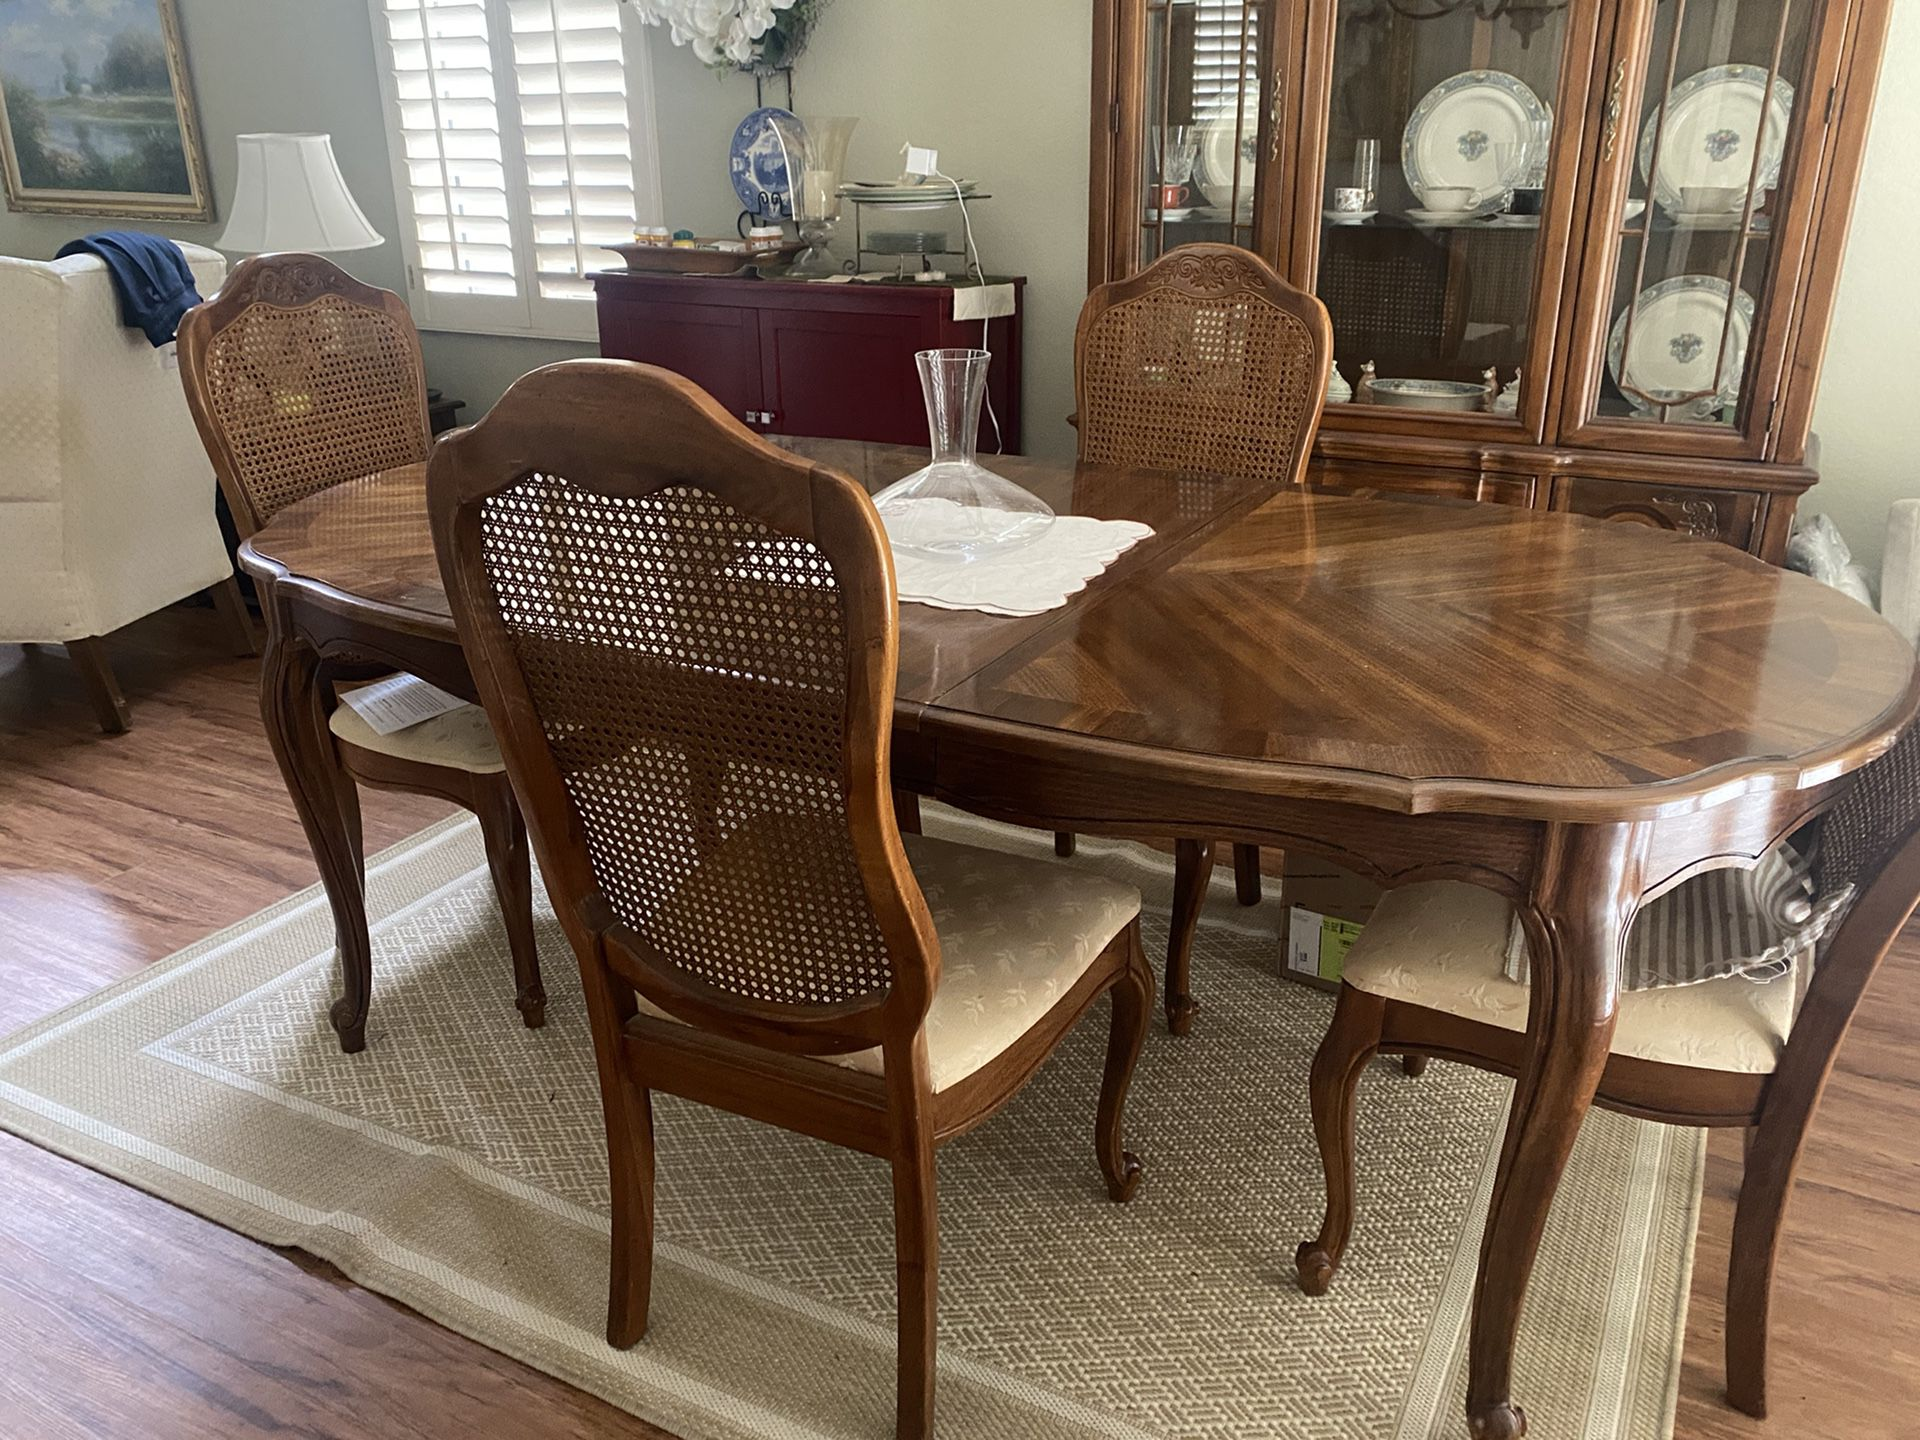 French Provincial  Dining Room Set With 6 Chairs And Marching China Cabinet